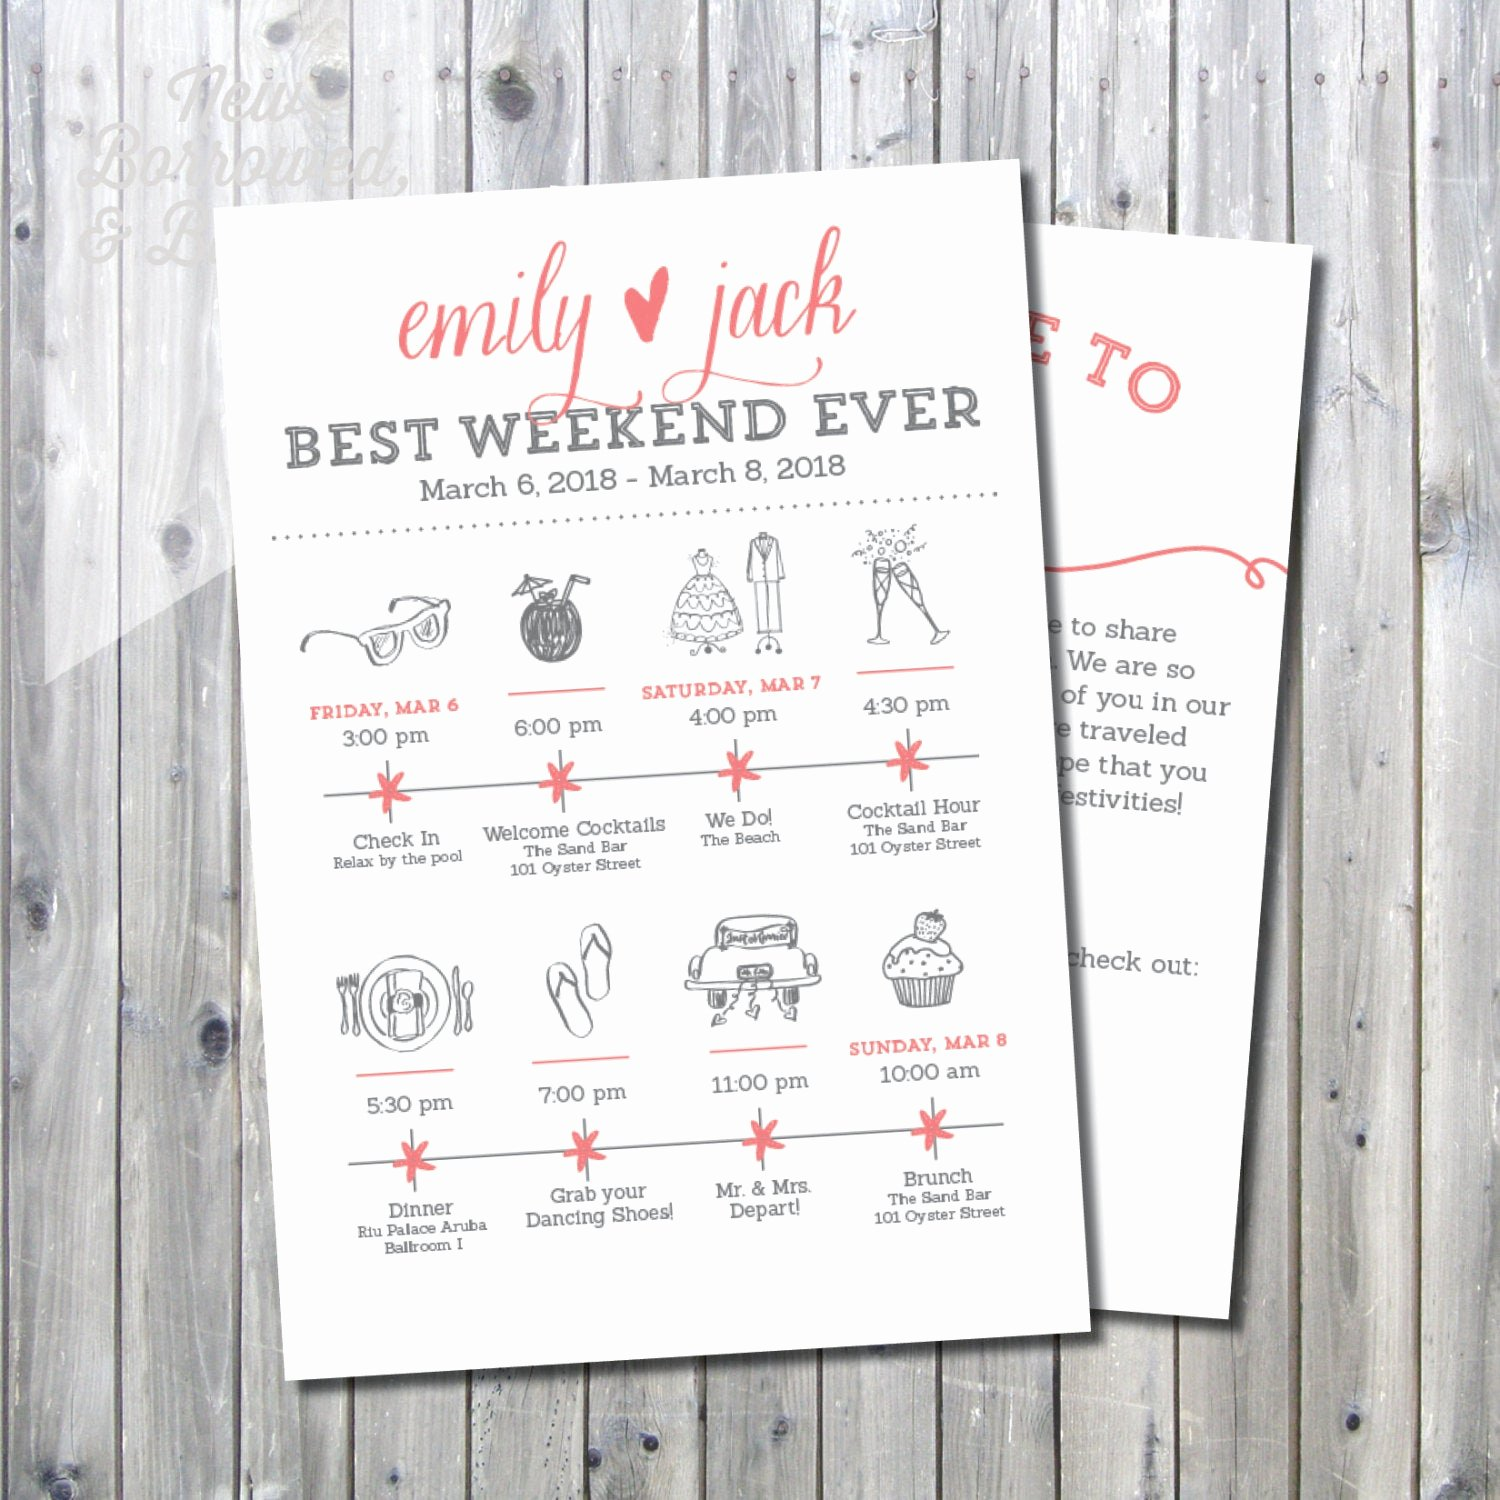 Wedding Weekend Itinerary Template Free Luxury Printable Destination Wedding Icon Itinerary with Wel E